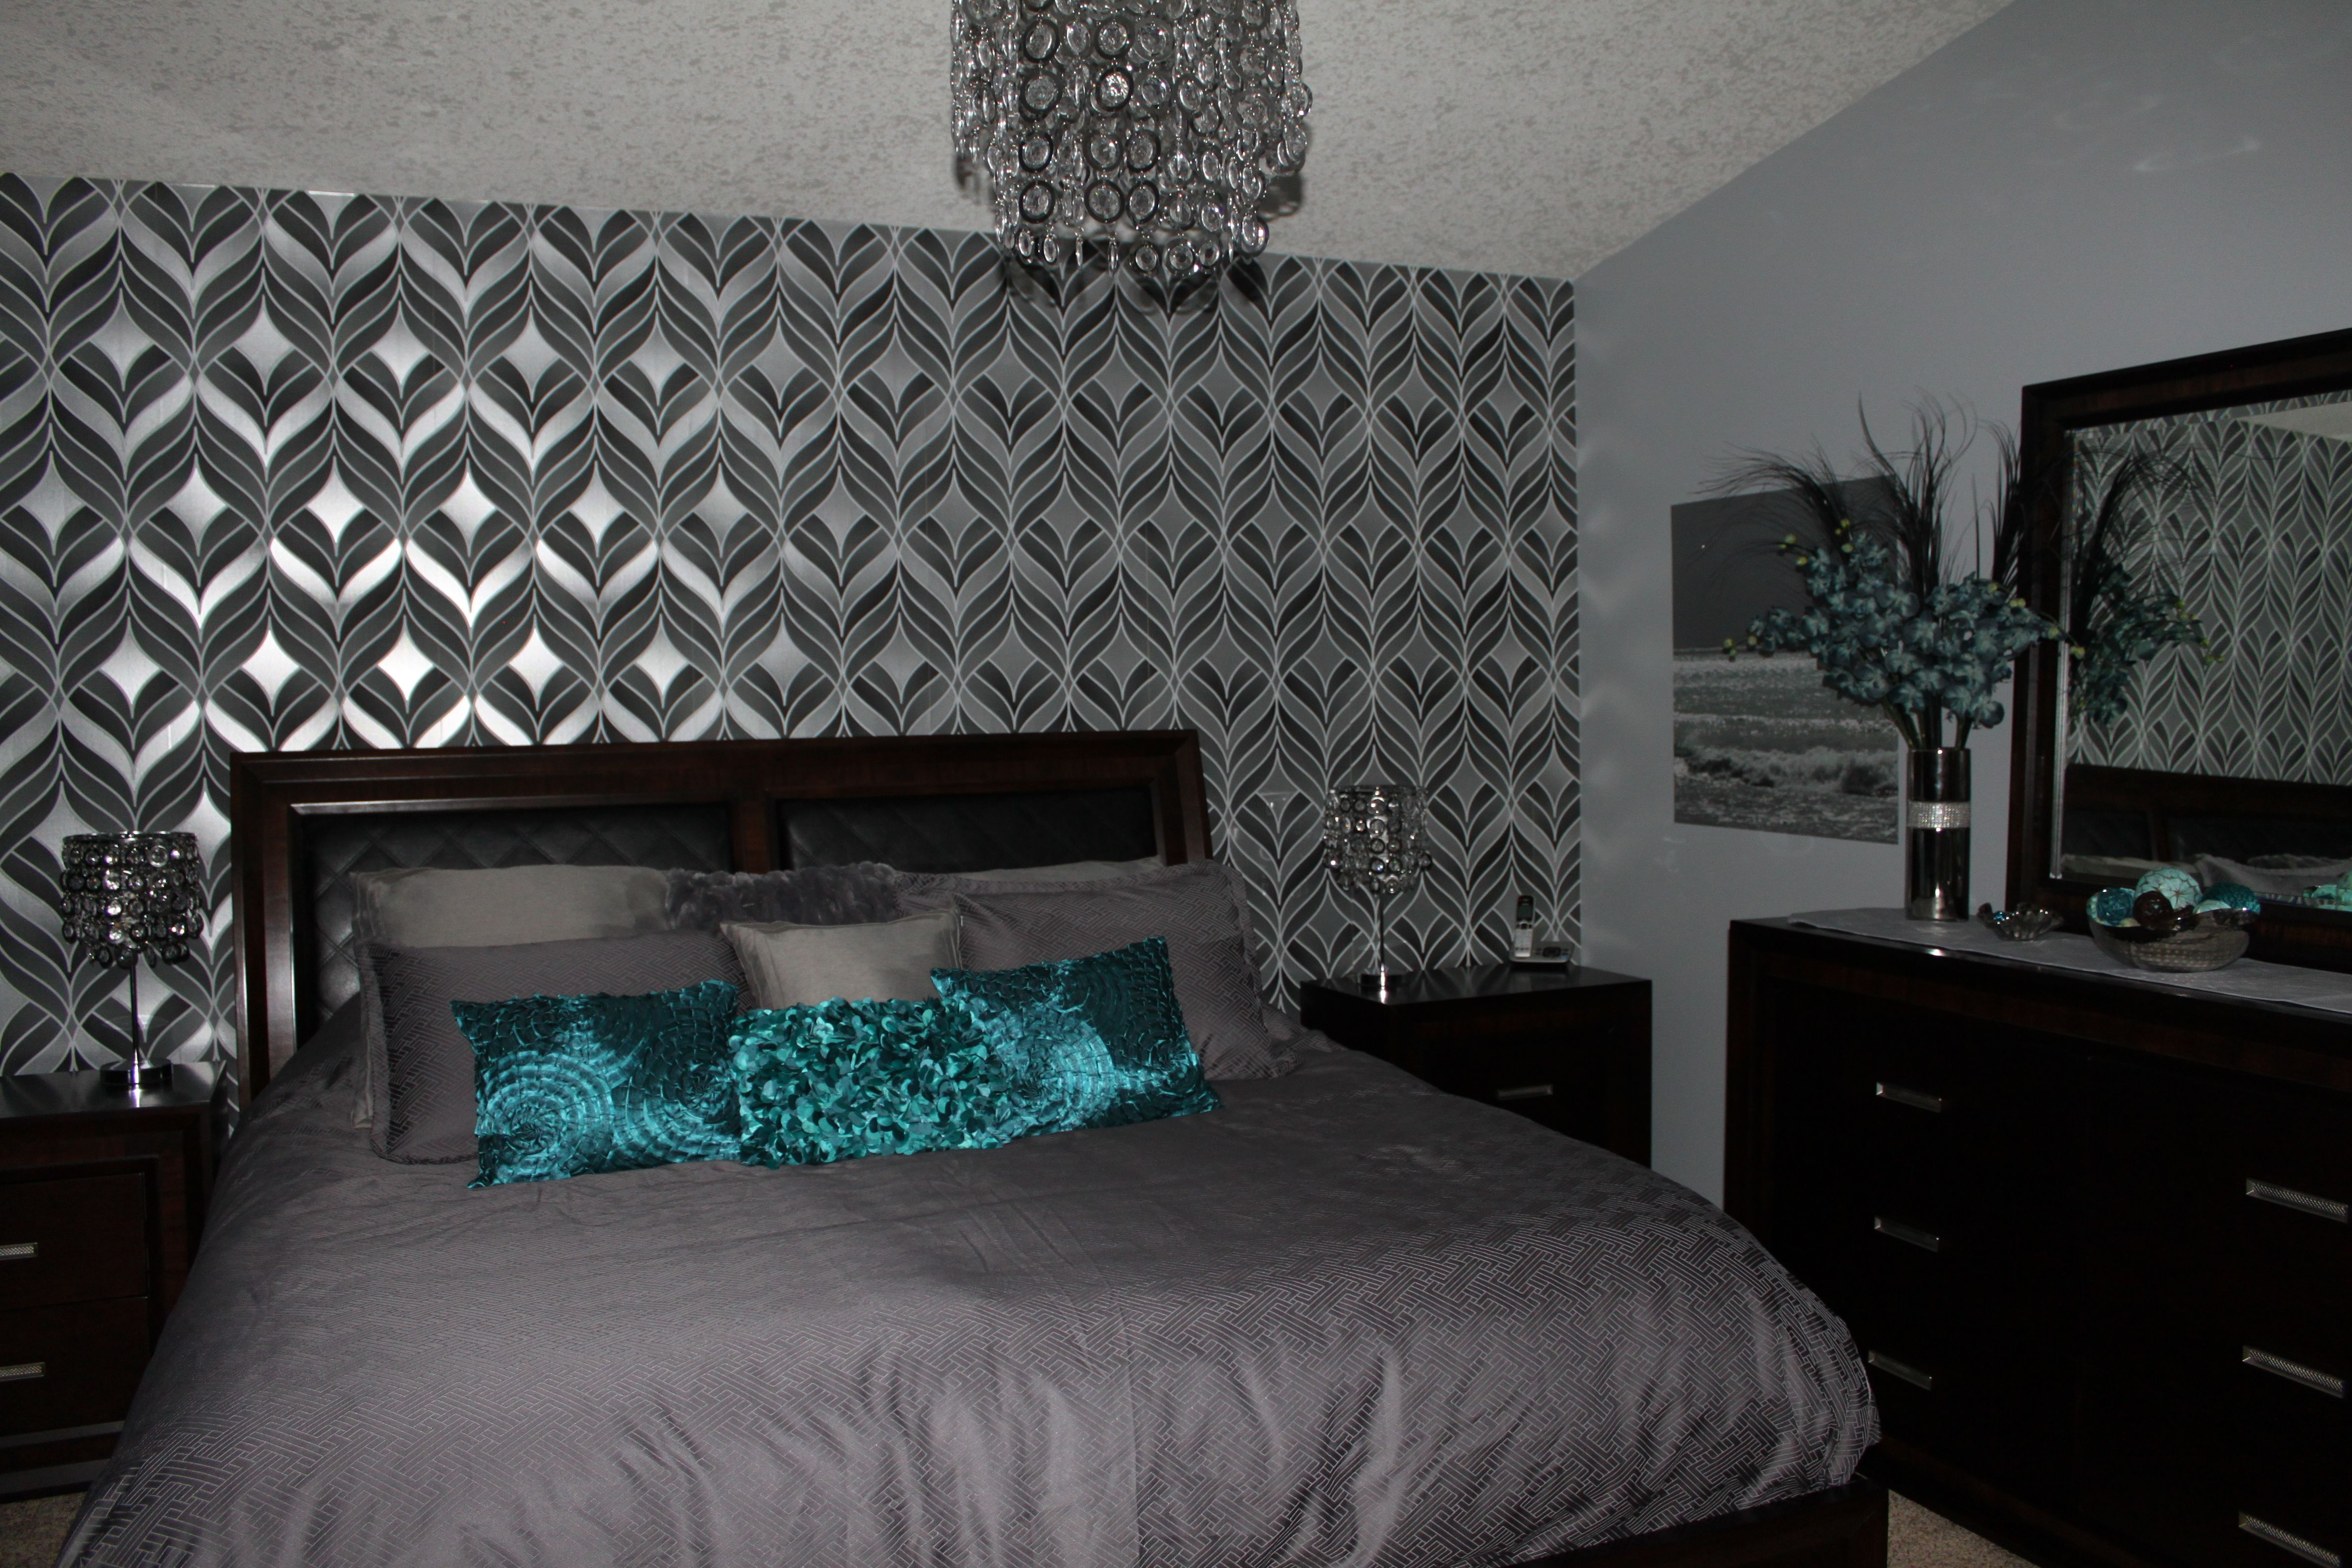 Offset window behind bed  silver and teal bedroom  home decor  pinterest  teal bedrooms